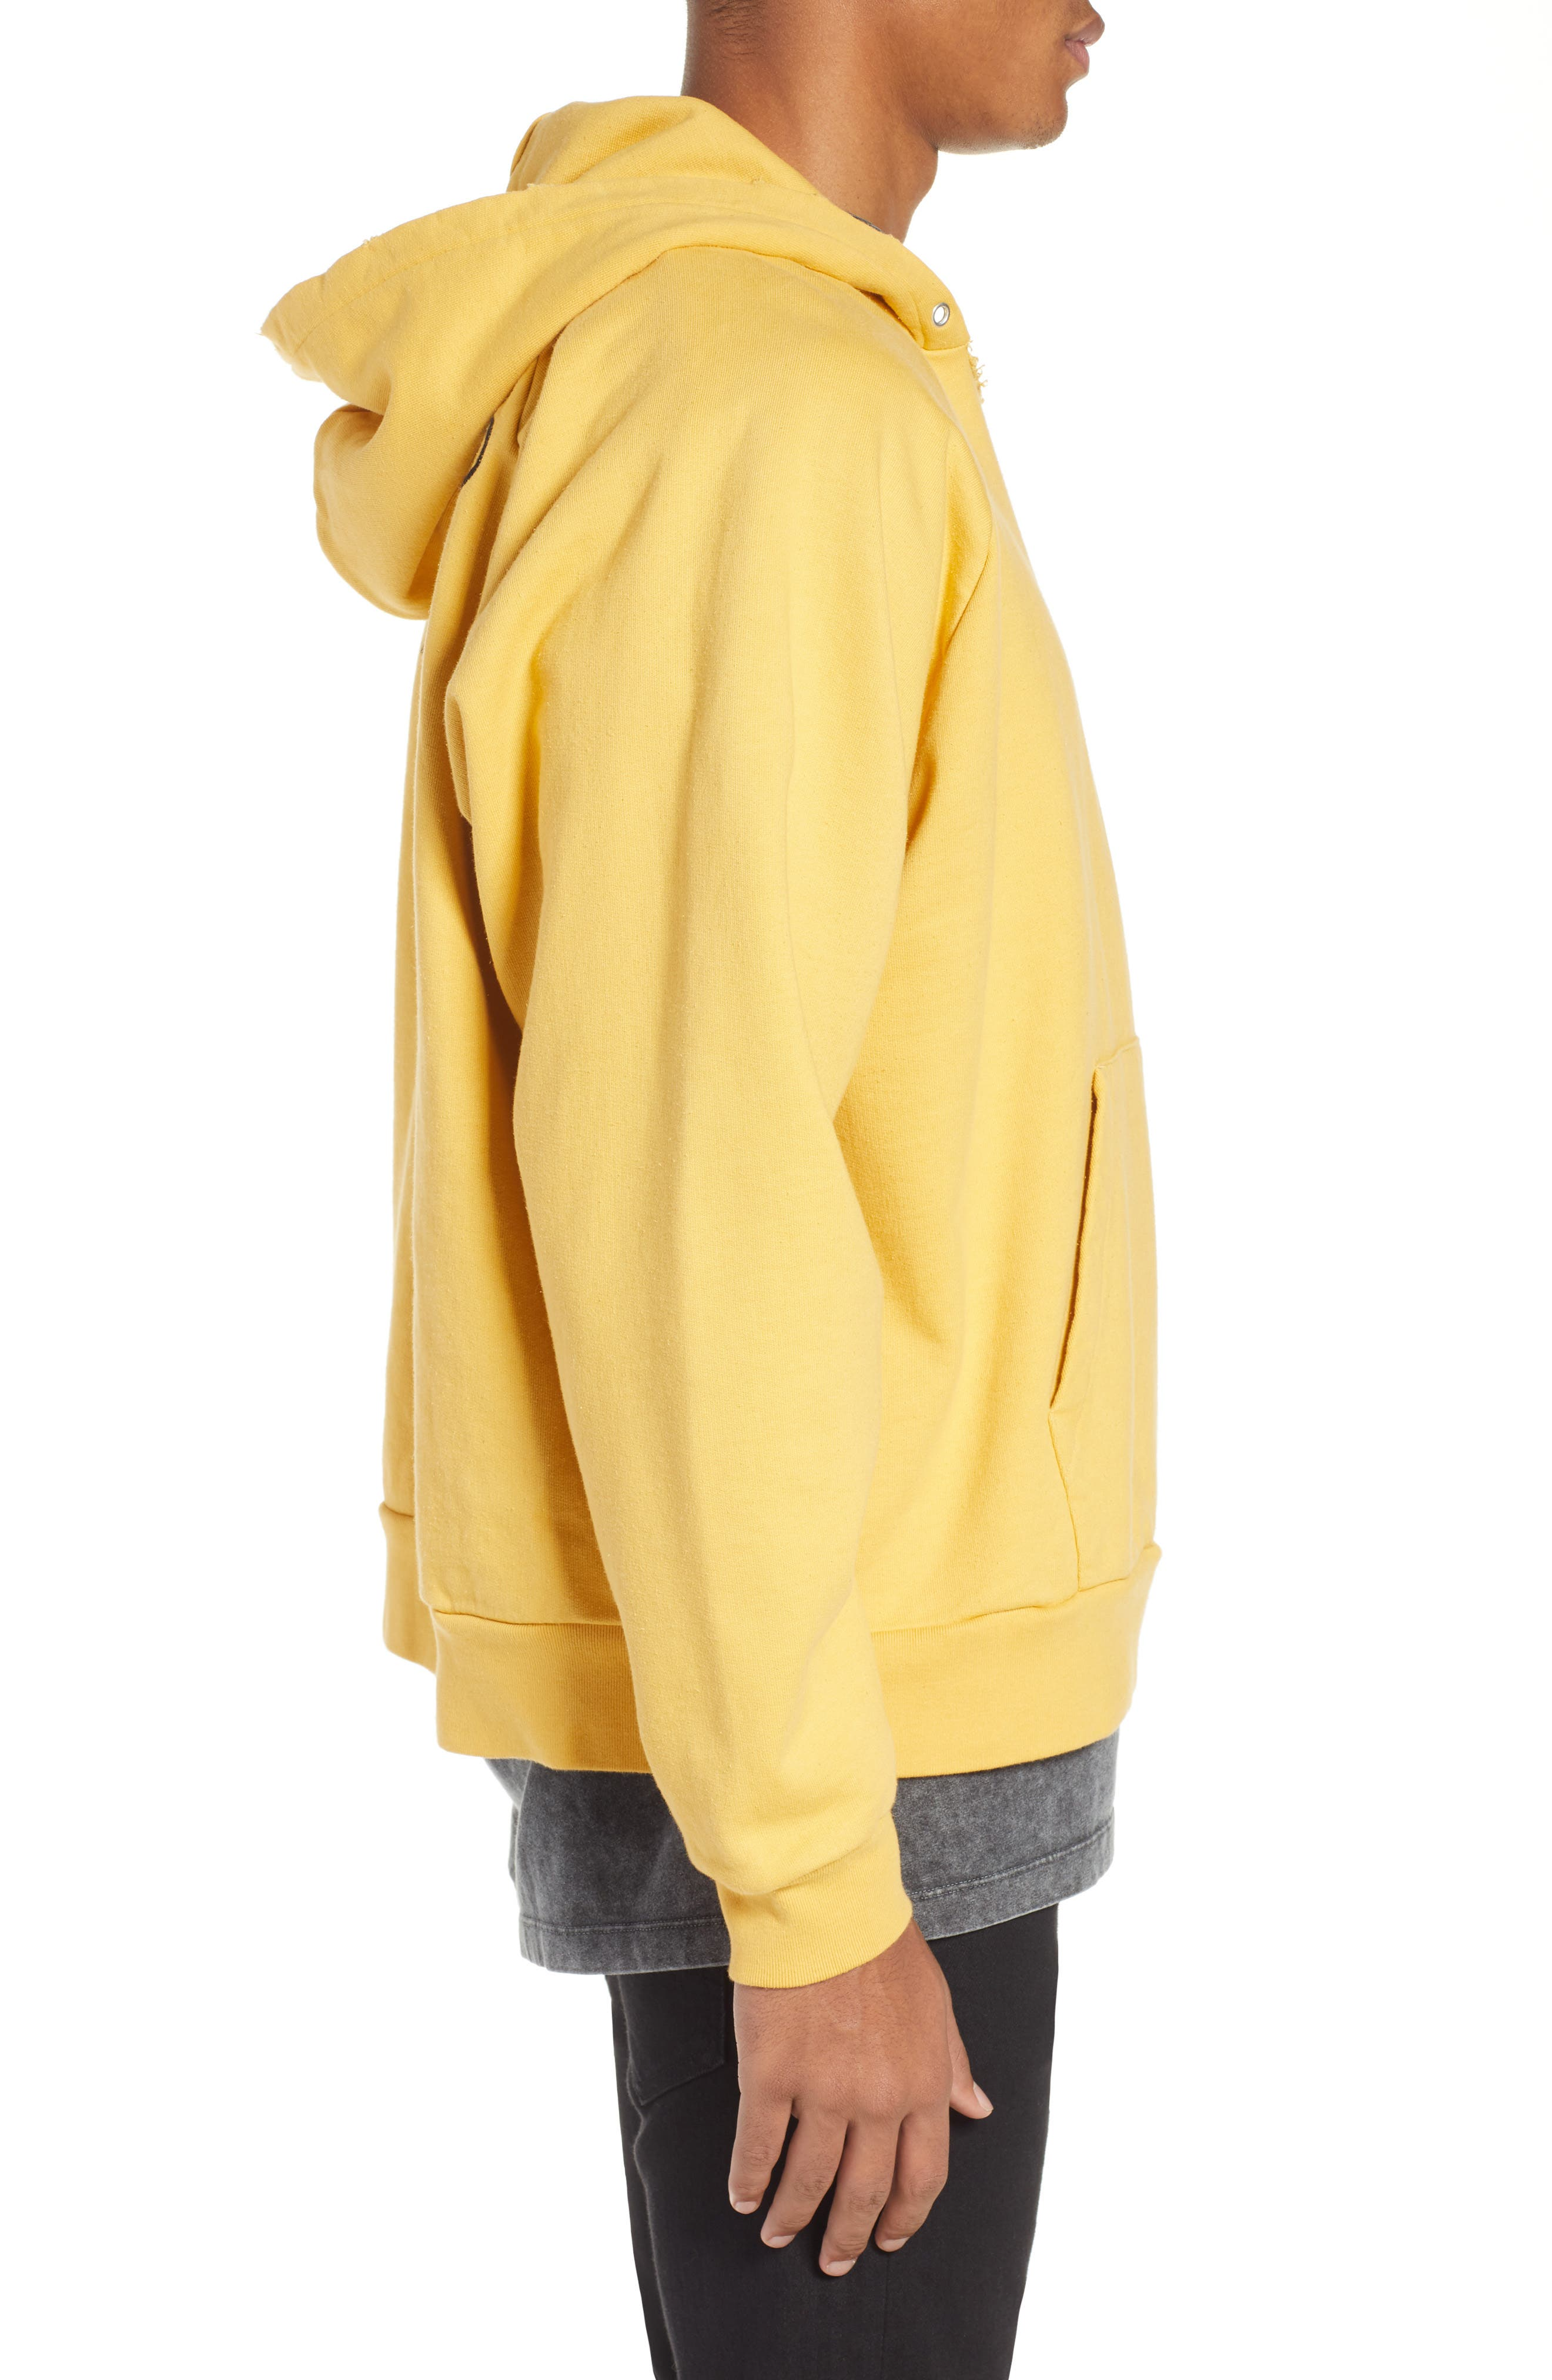 THE KOOPLES, Oversize Hoodie, Alternate thumbnail 3, color, YELLOW